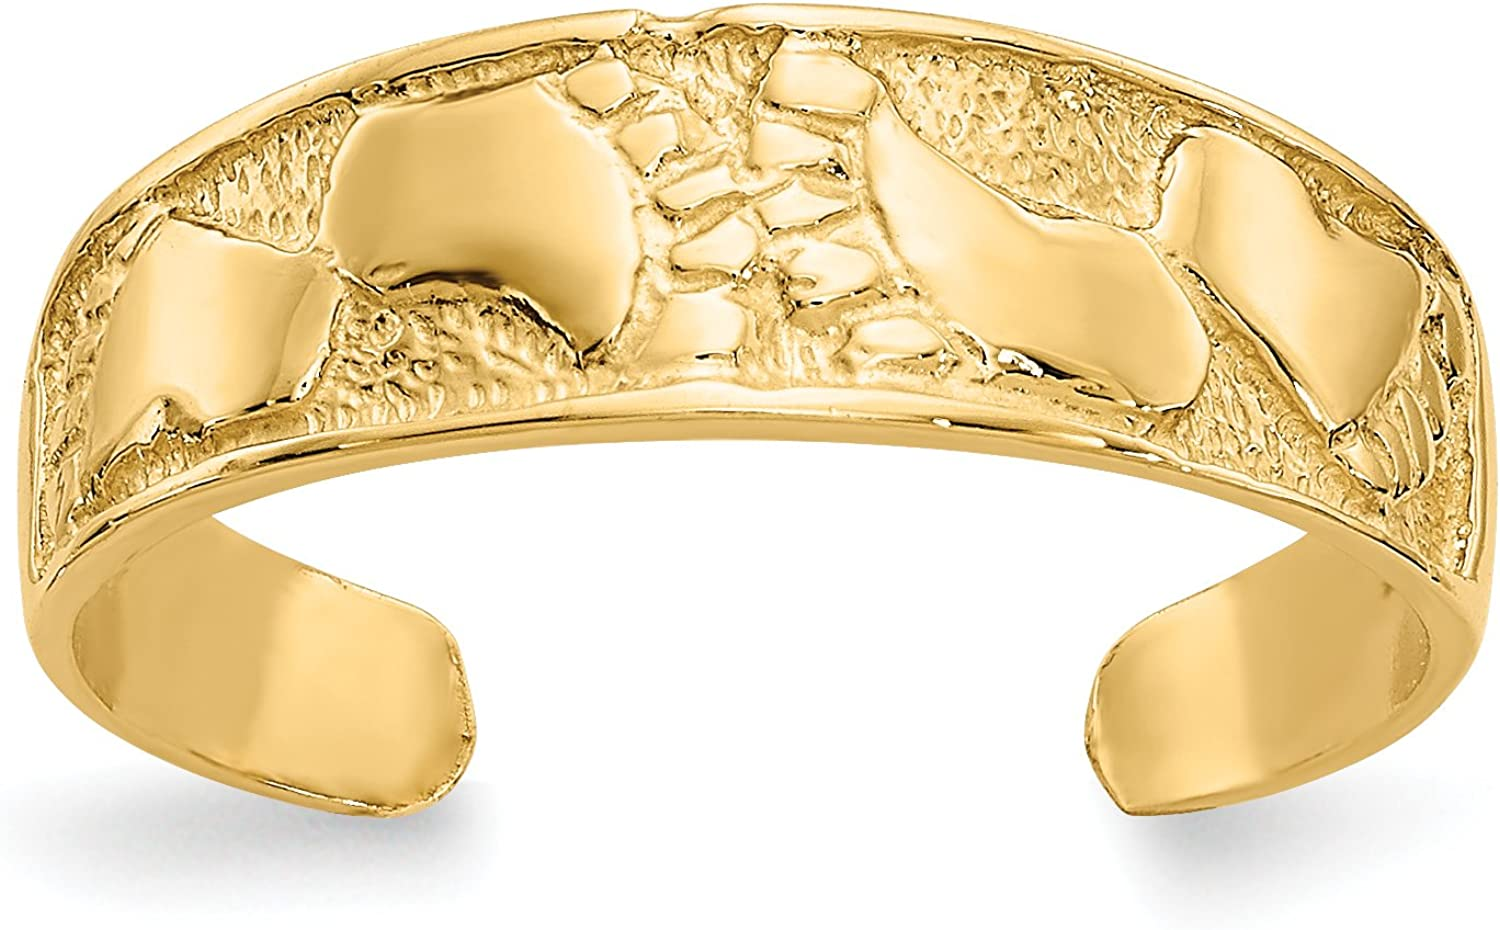 14k Yellow Gold Polished Footprints Toe Ring with Textured Band